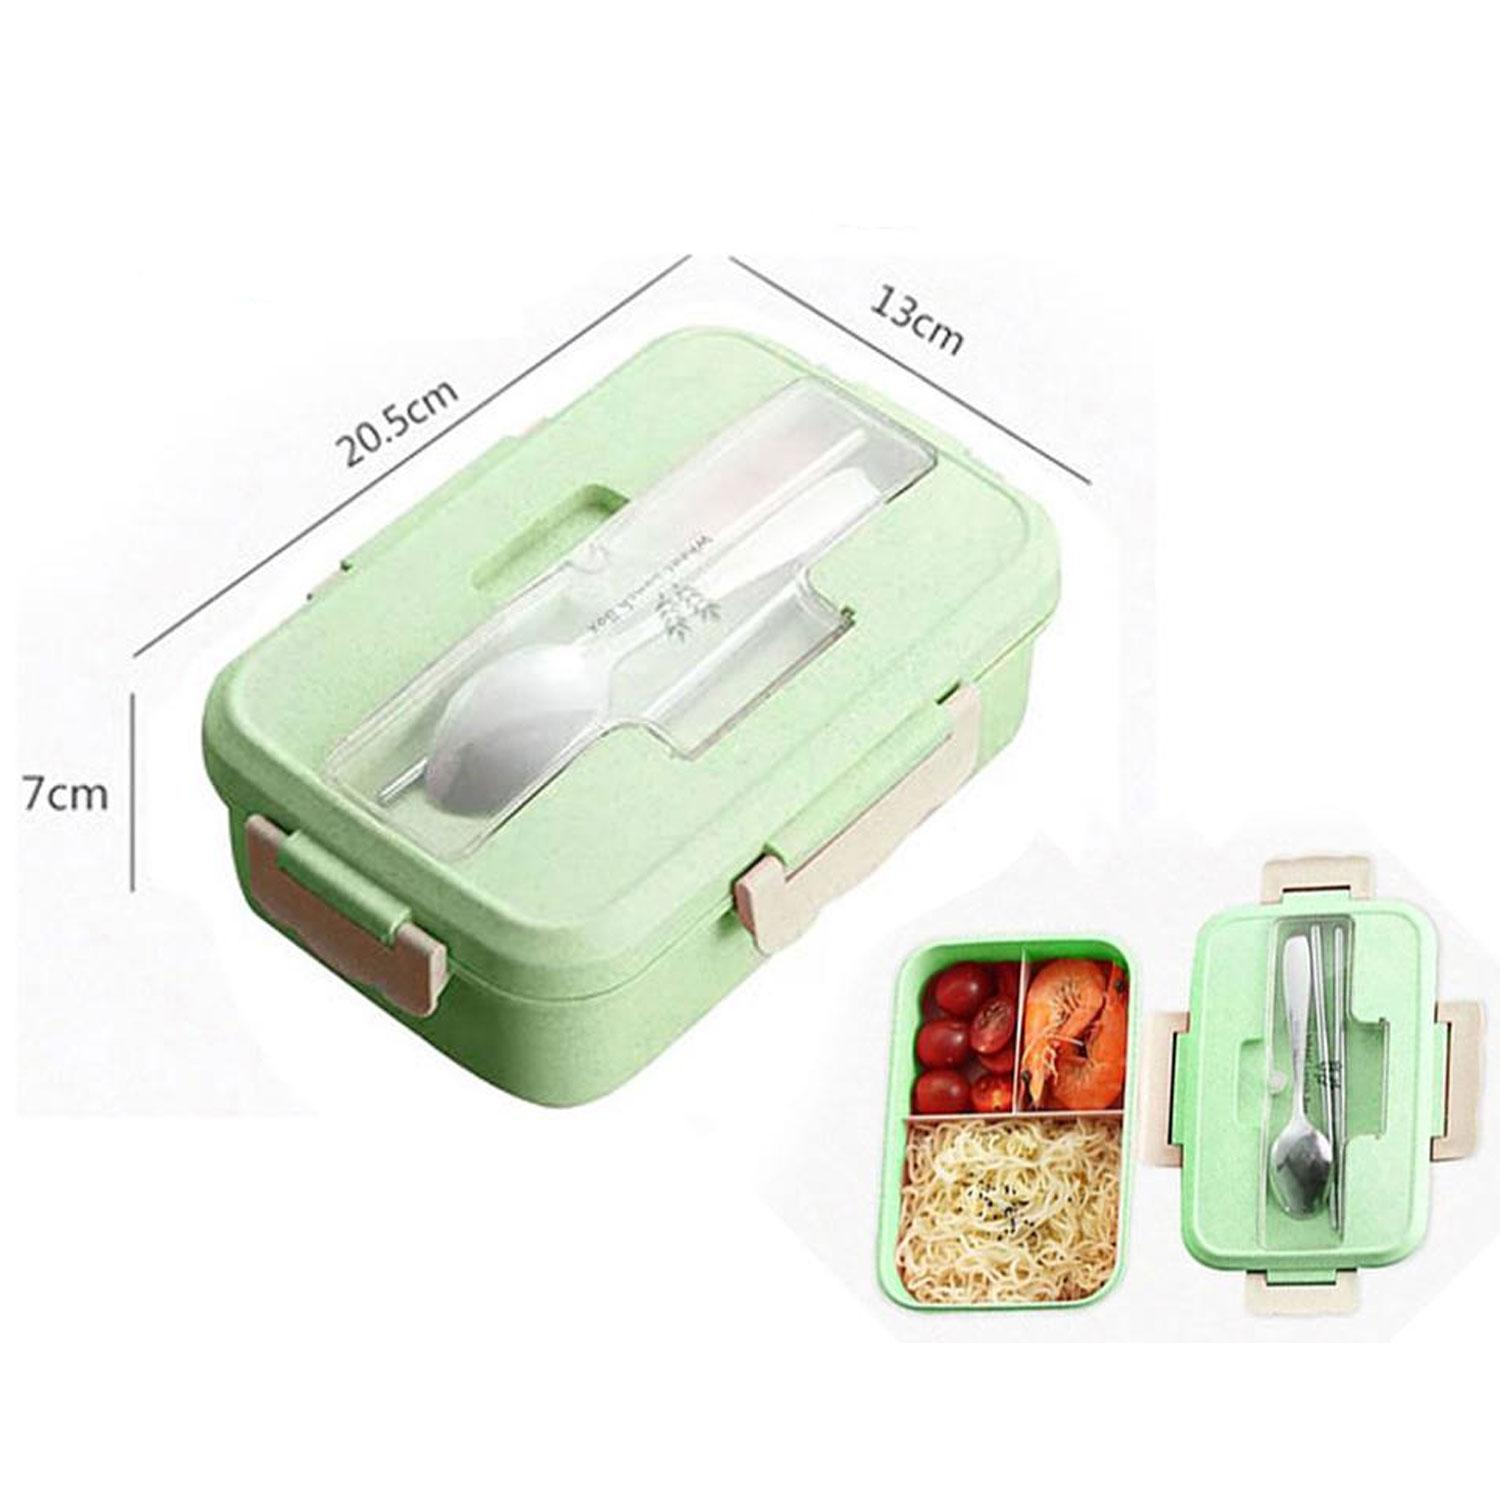 Quality Assurance Wheat Straw Material Eco-Freindly Lunch Box with Utensils